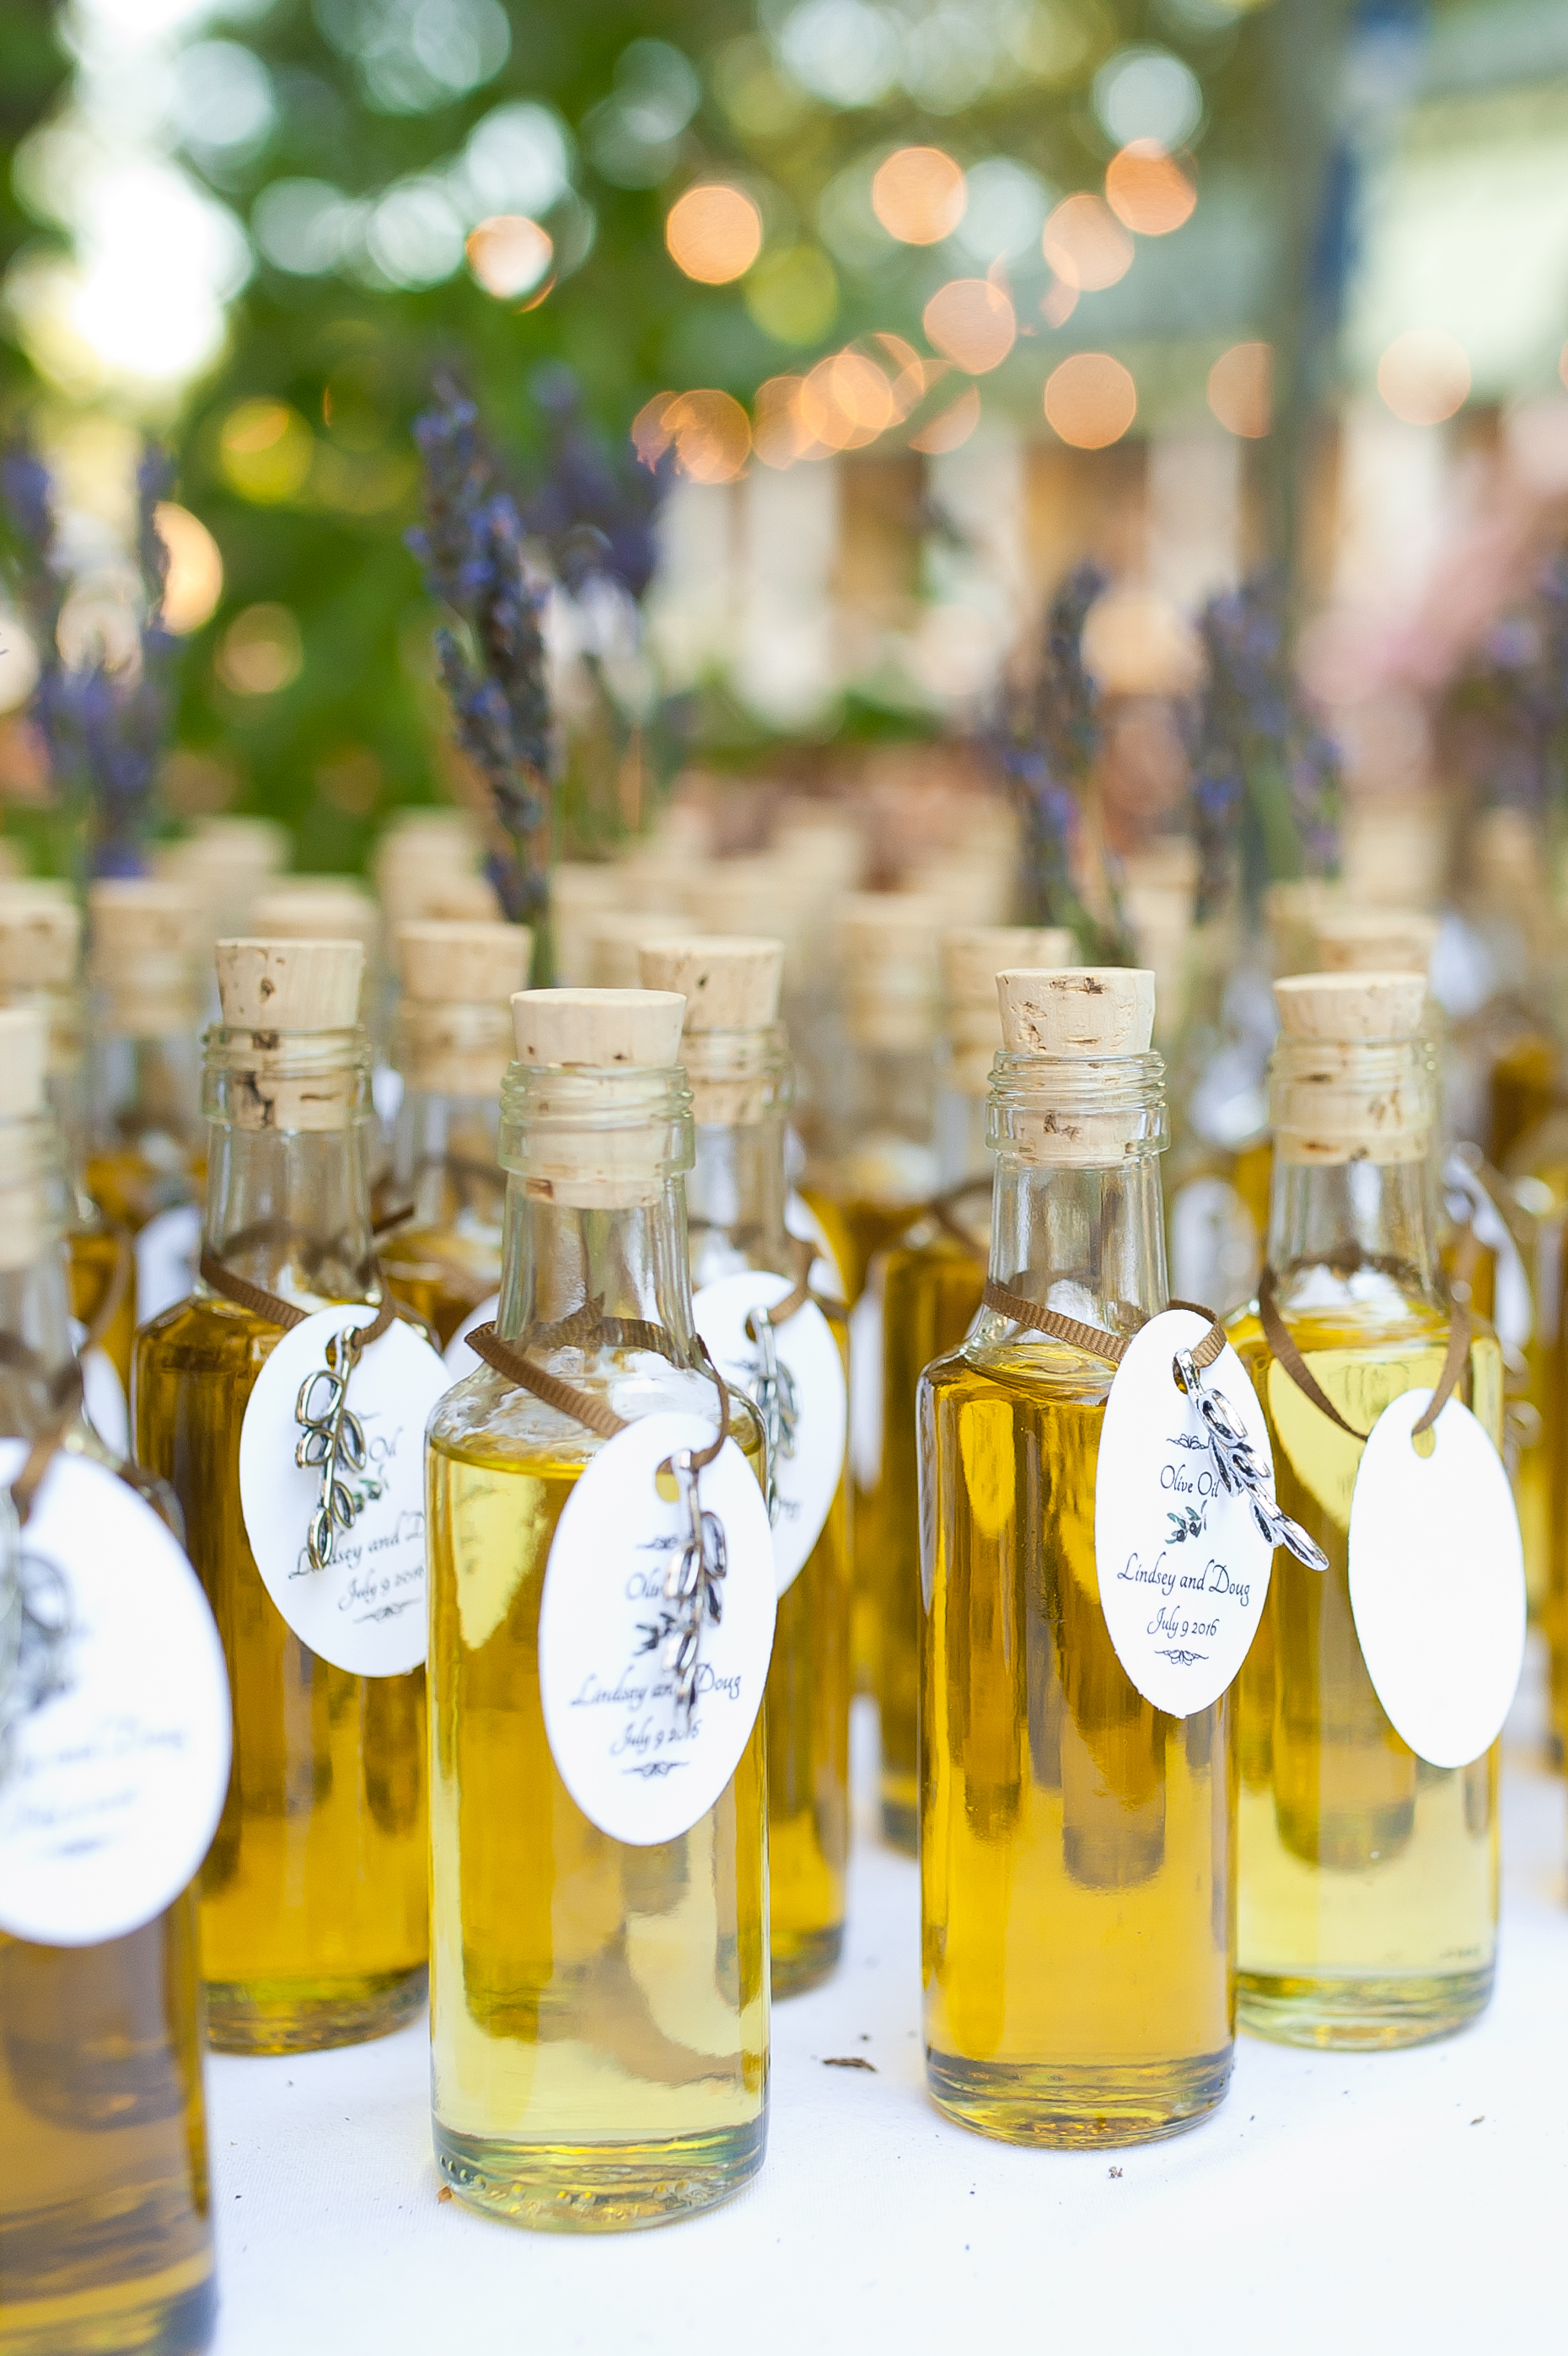 Mini Olive Oil Bottle - While this isn't a typical wedding favor, mini bottles of olive oil look amazing on the table and are definitely memorable! Olive oils and balsamic vinegars are an elegant choice, especially for a Napa Valley vineyard wedding! Better yet, you know your guests will use this in their kitchen and think of your special day every time they do!Photographer: c.m.elle studios